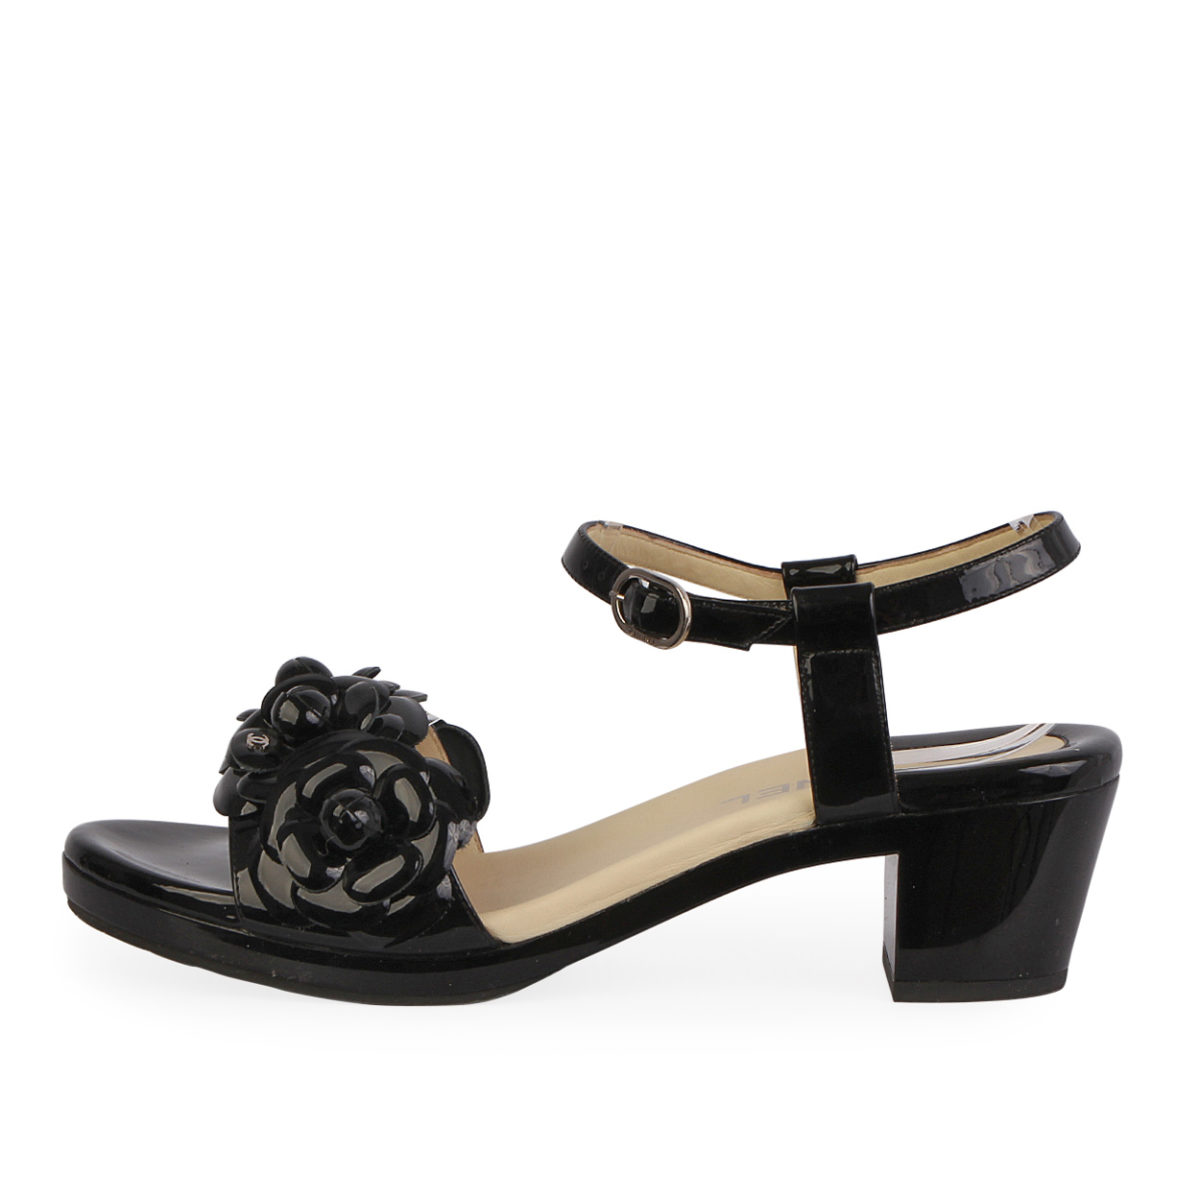 d61b70fc6ae CHANEL Patent Leather Camellia Flowers Sandals Black - S  37.5 (4.5 ...